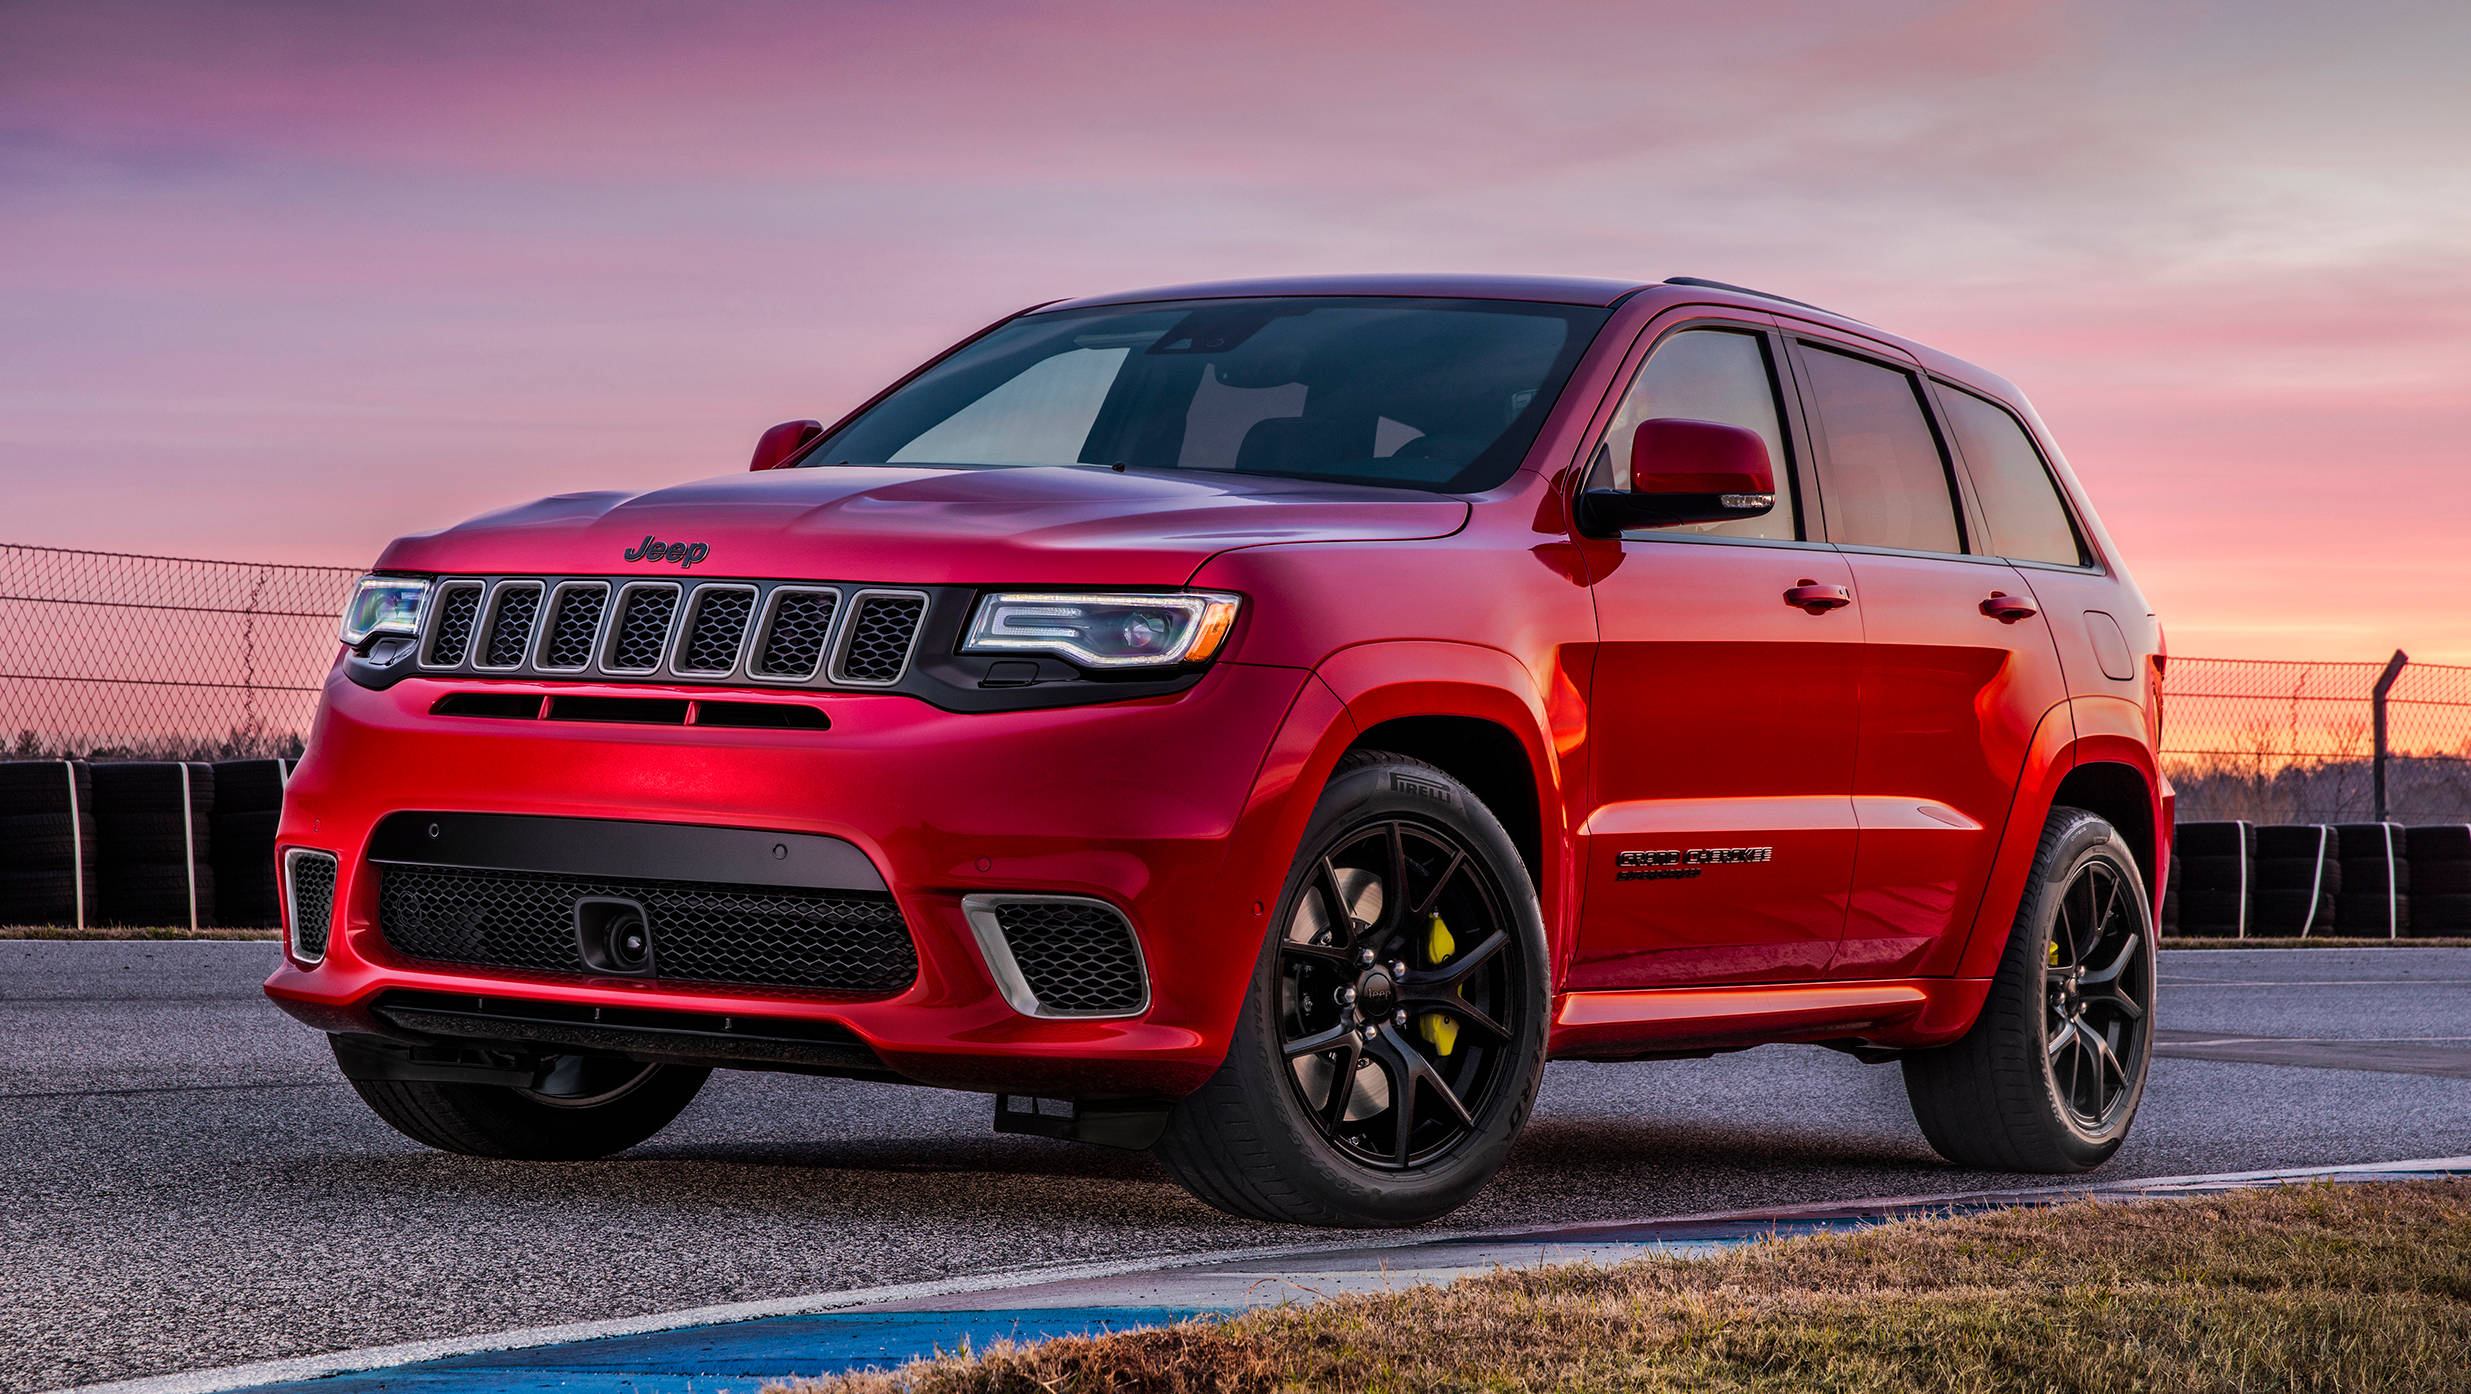 2018 Jeep Grand Cherokee Trackhawk revealed ahead of New York - Car News